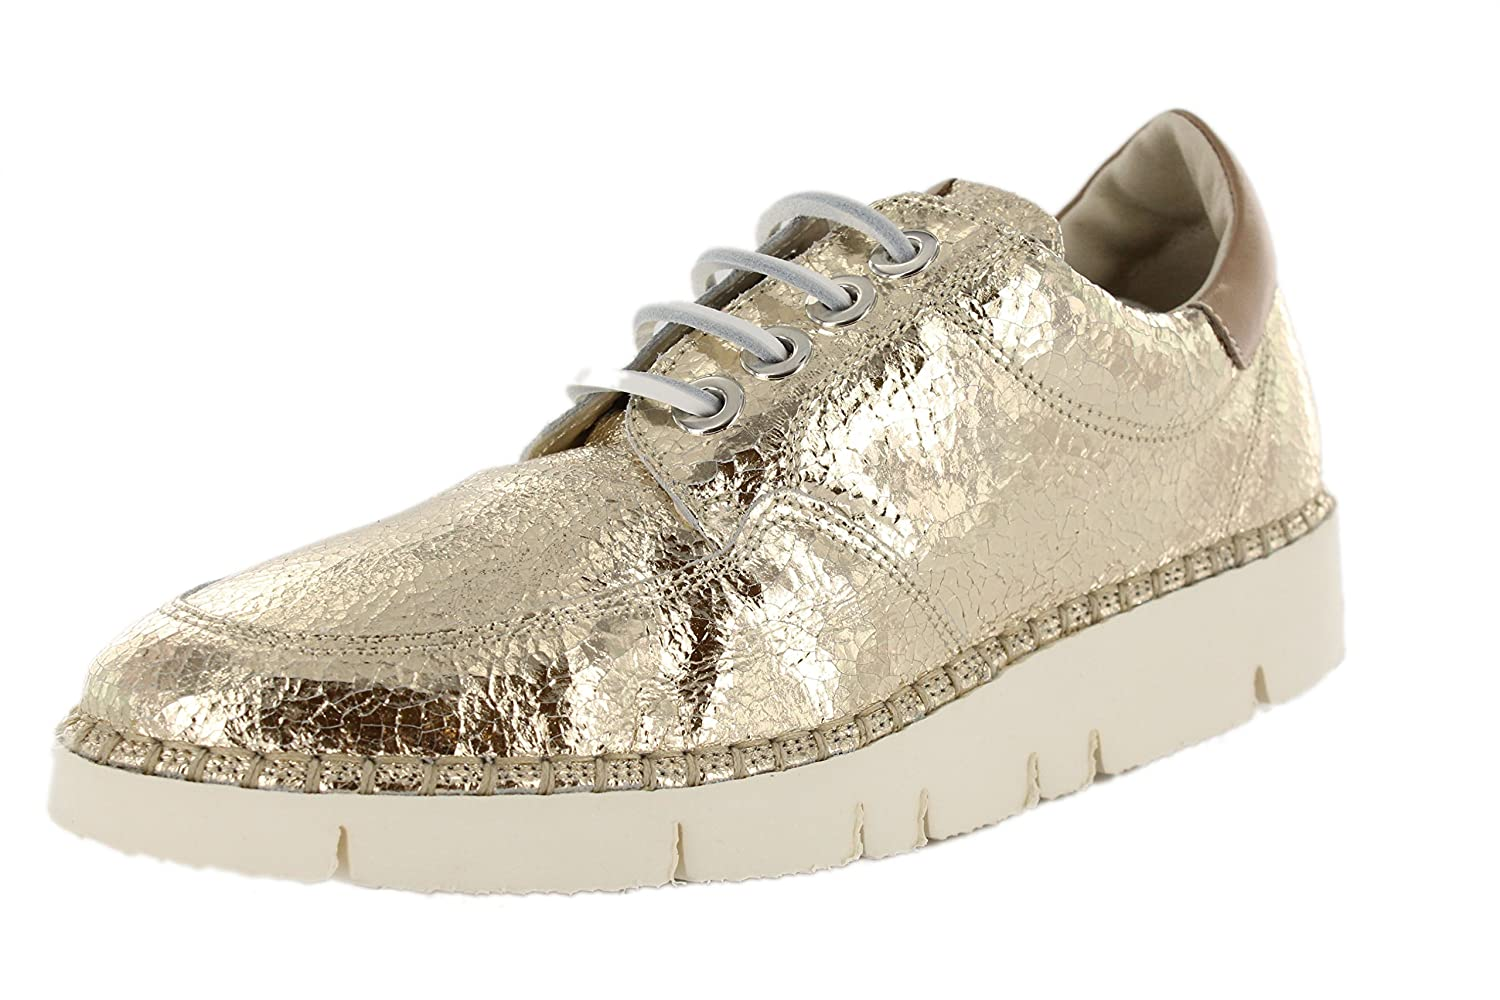 Mally Turnschuhe Damen Cesi Cesi Cesi Gold metallic Leder fb21e0